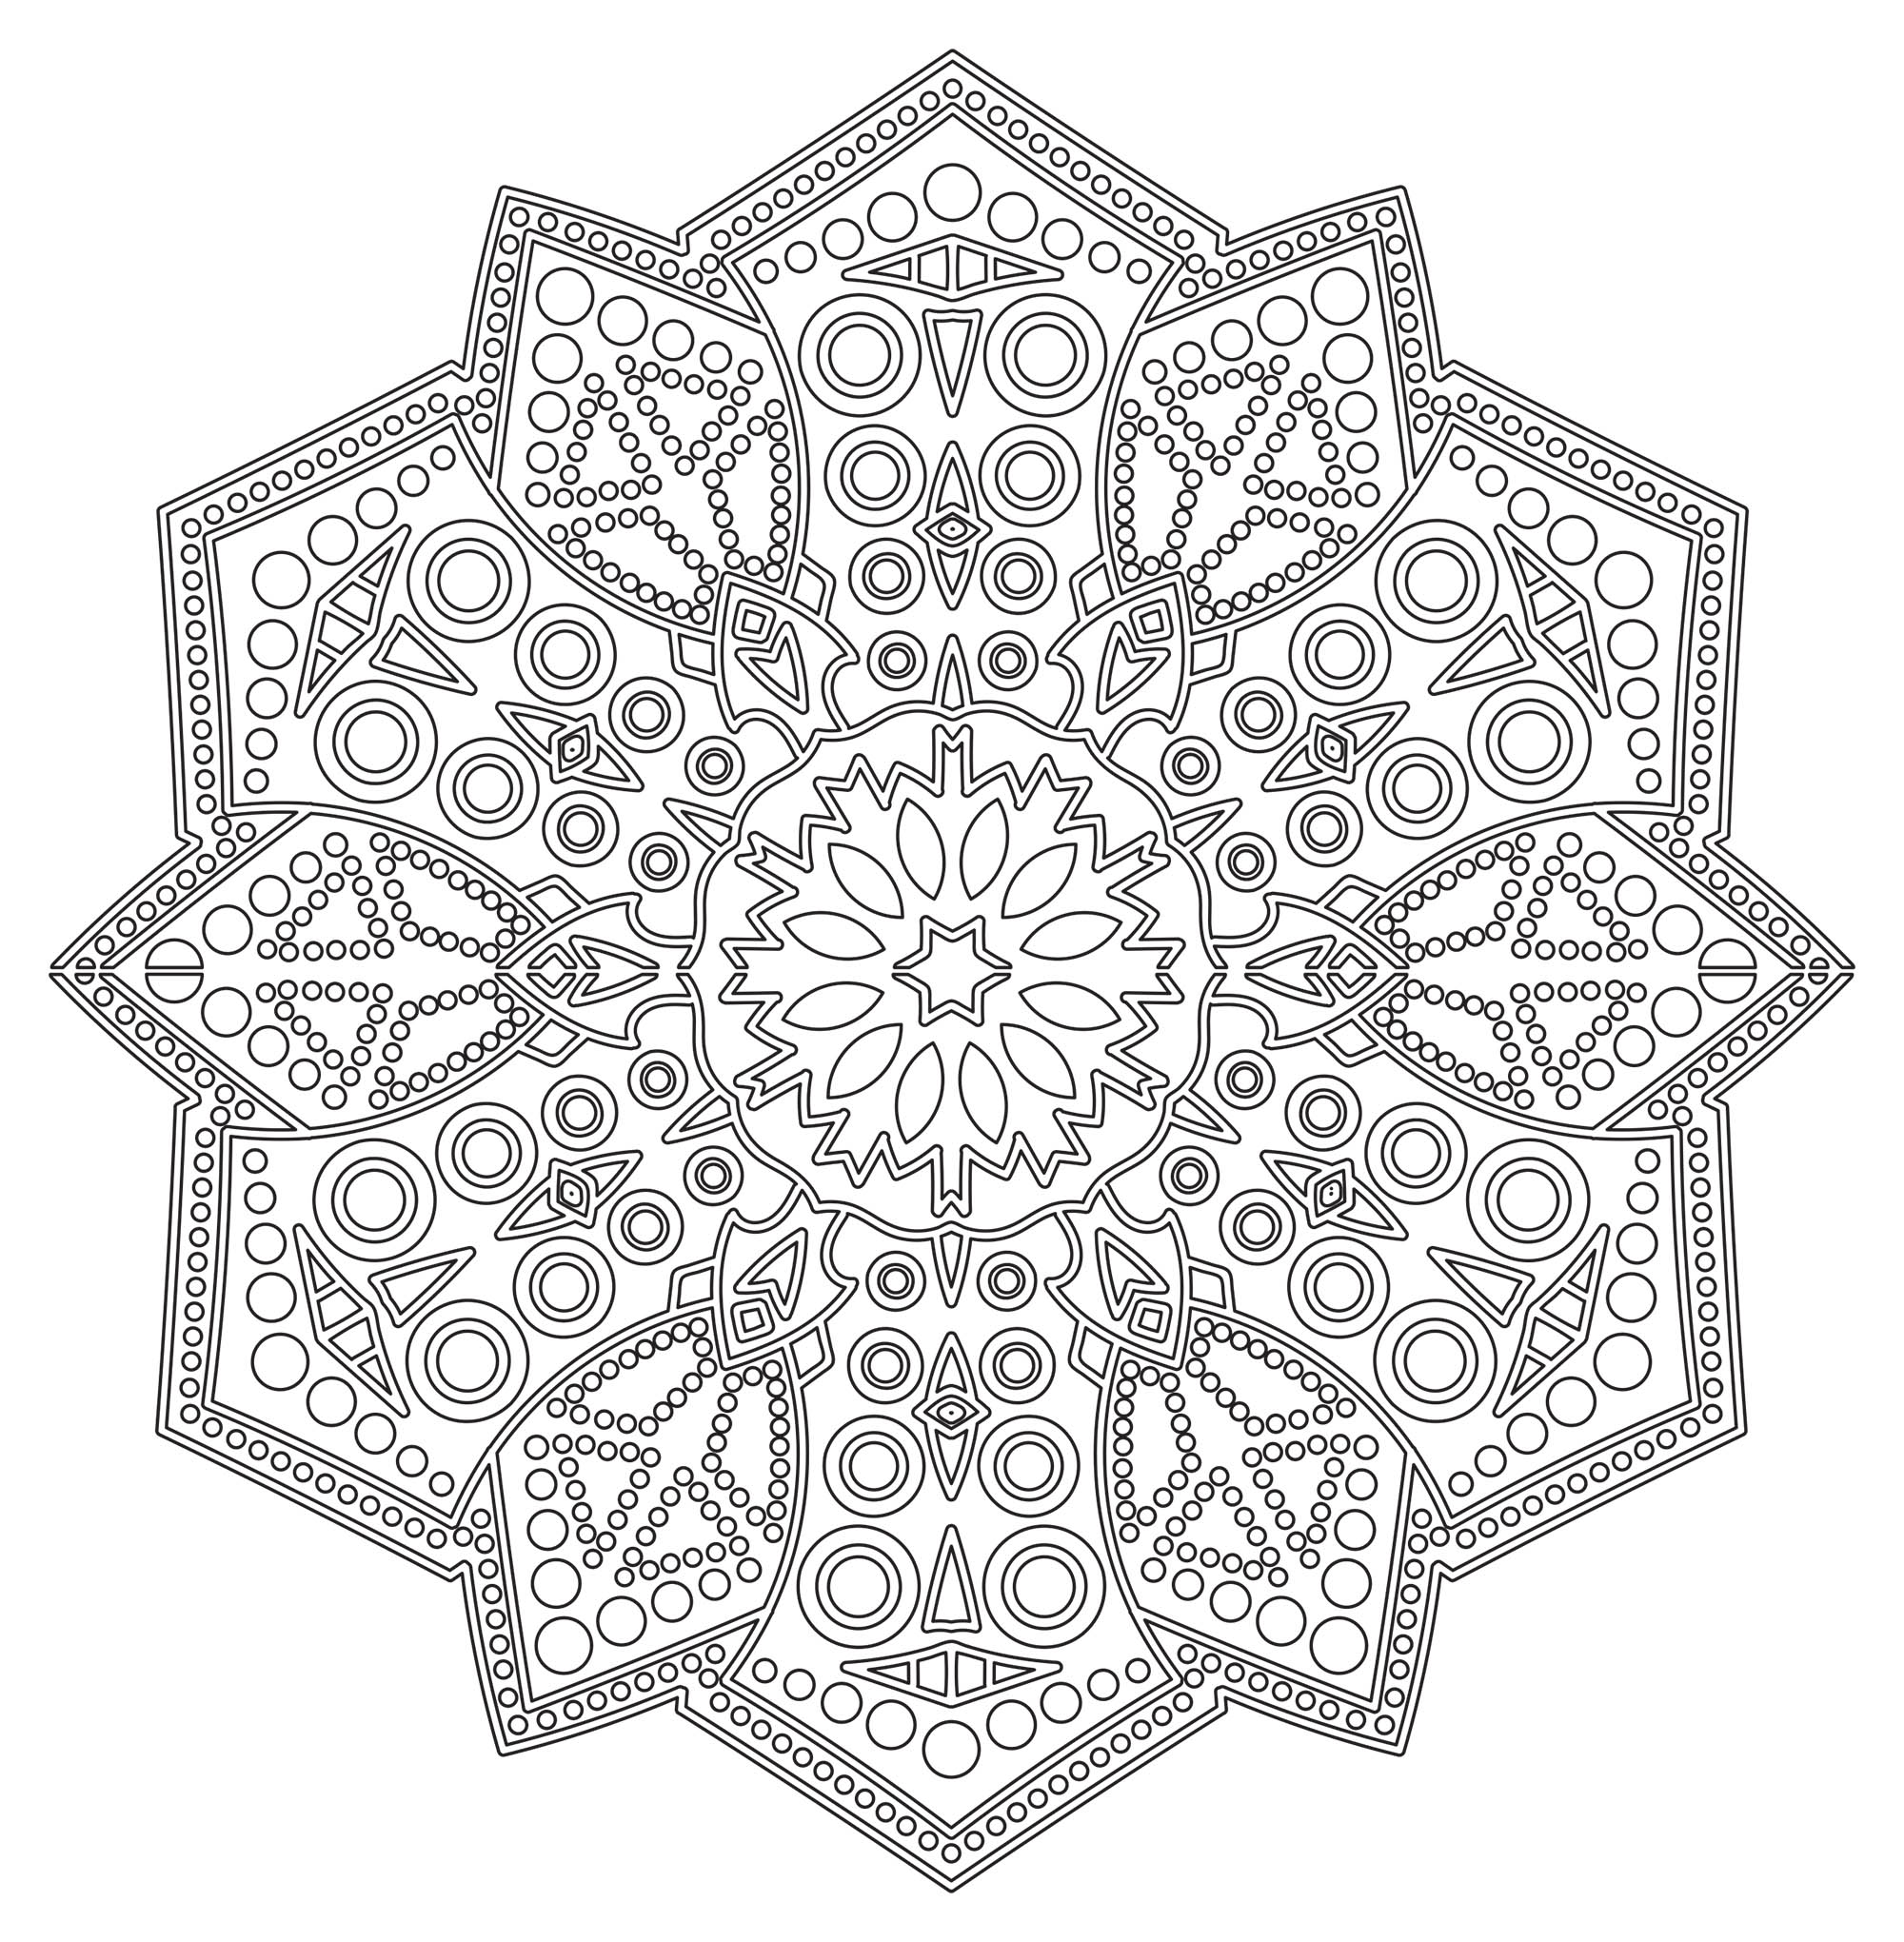 Prepare very fine pens and pencils, because this Mandala needs to be very meticulous, precise and picky, to get a good quality result. A lot of details and various patterns ... So just color it !